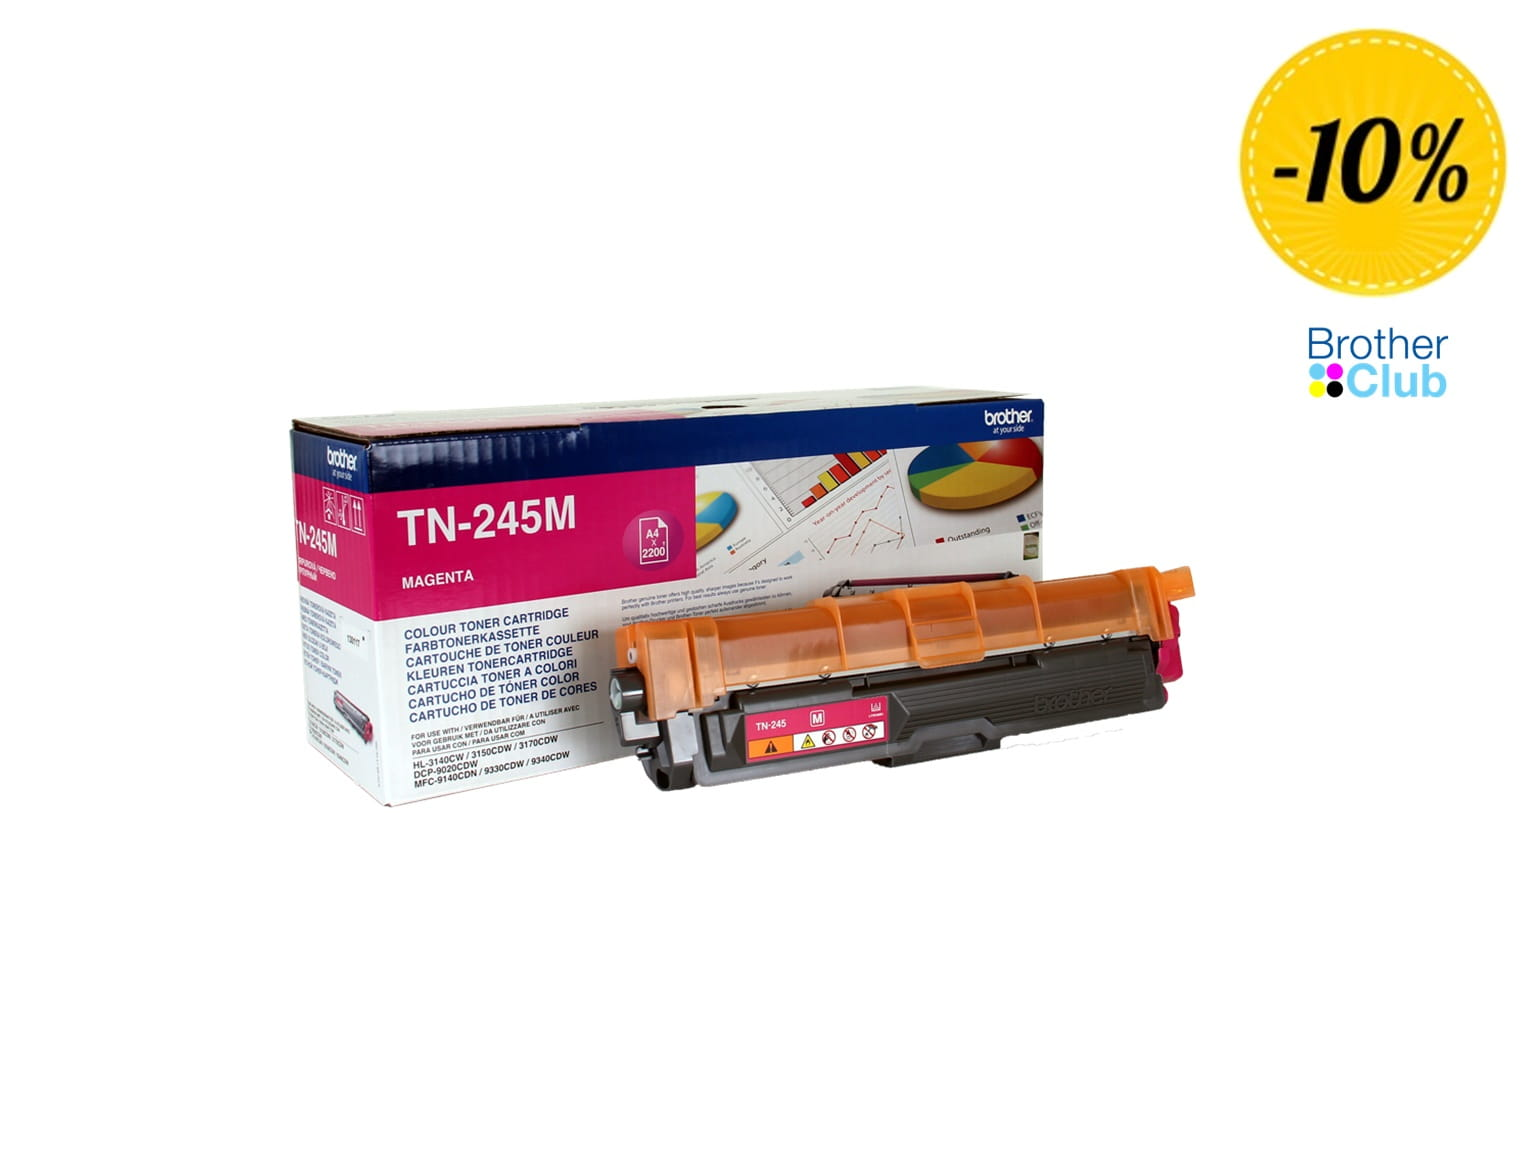 Toner magenta originale Brother TN245M con sconto Brother Club